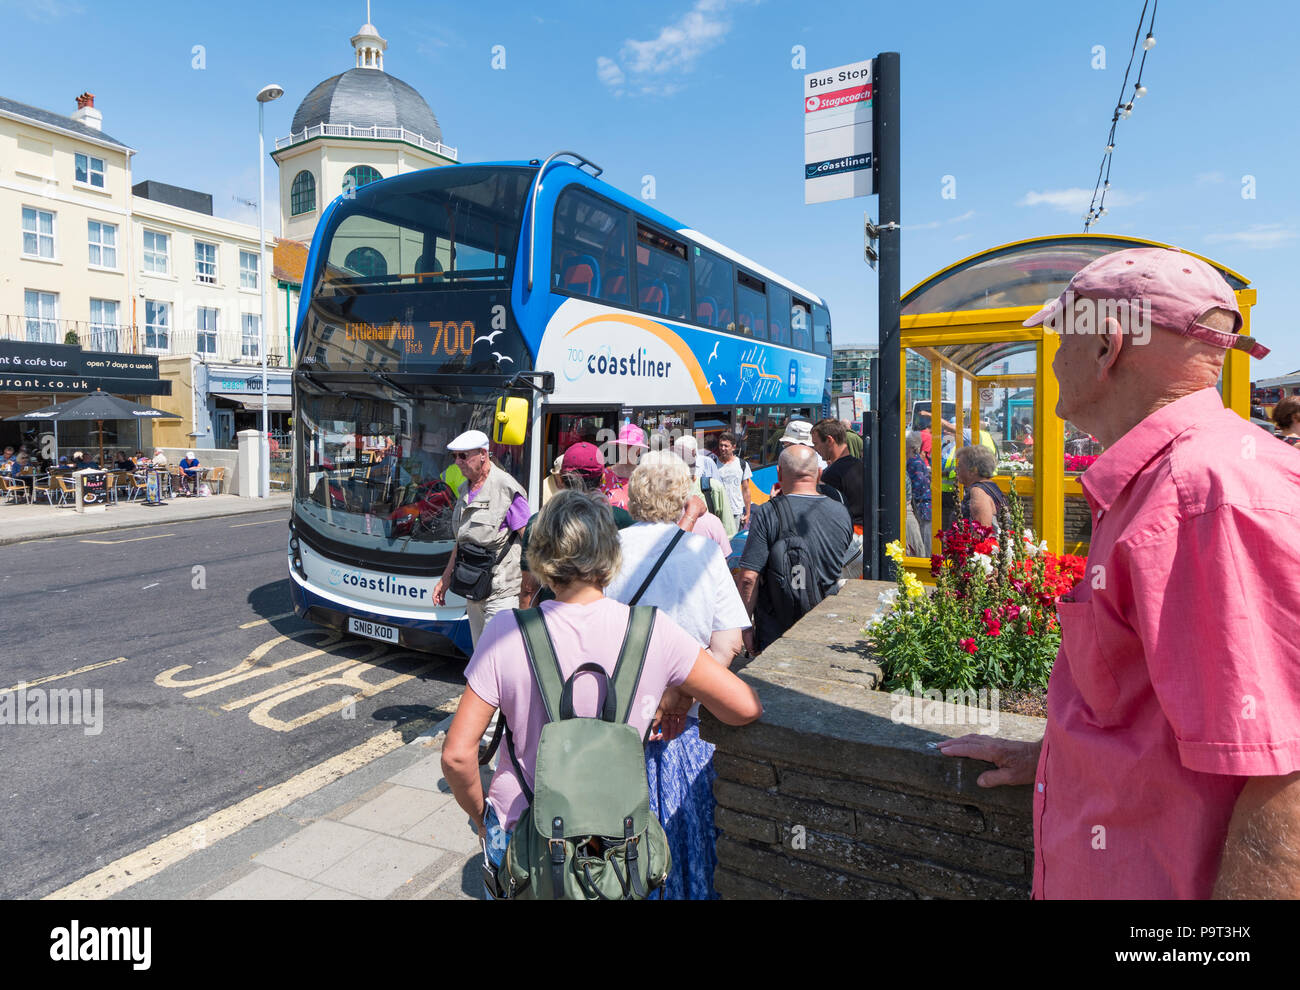 People boarding a new Stagecoach environmentally friendly number 700 Coastliner bus in Summer in Worthing, West Sussex, England, UK. - Stock Image